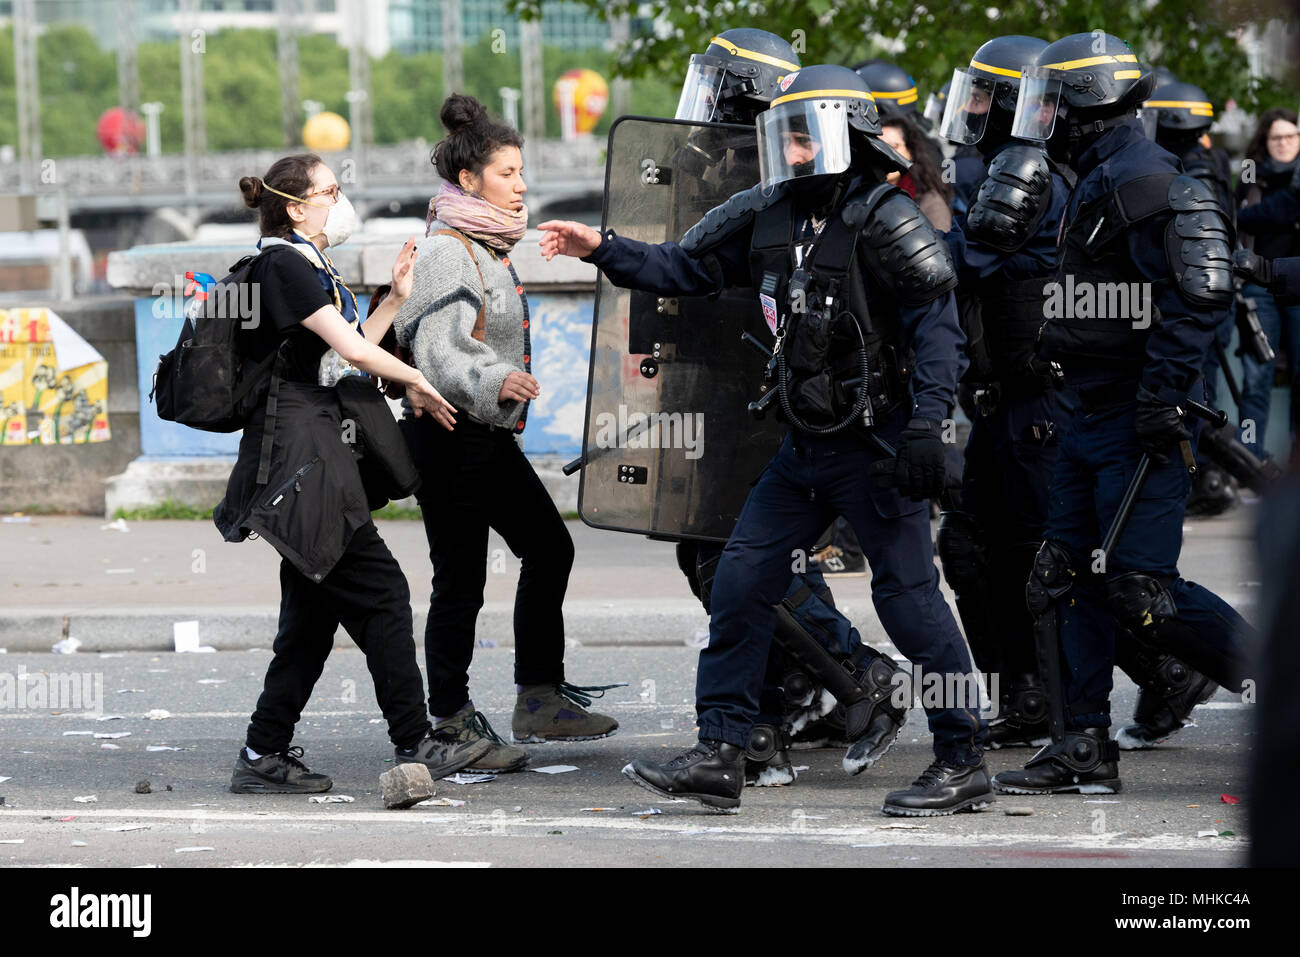 Paris, France. 1st May 2018. Workers Day manifestation. Two females challenge police during the May Day resistance as the police try to clear the area after rioting. 1st May 2018. Paris, France. Credit: Paul Roberts/Alamy Live News - Stock Image